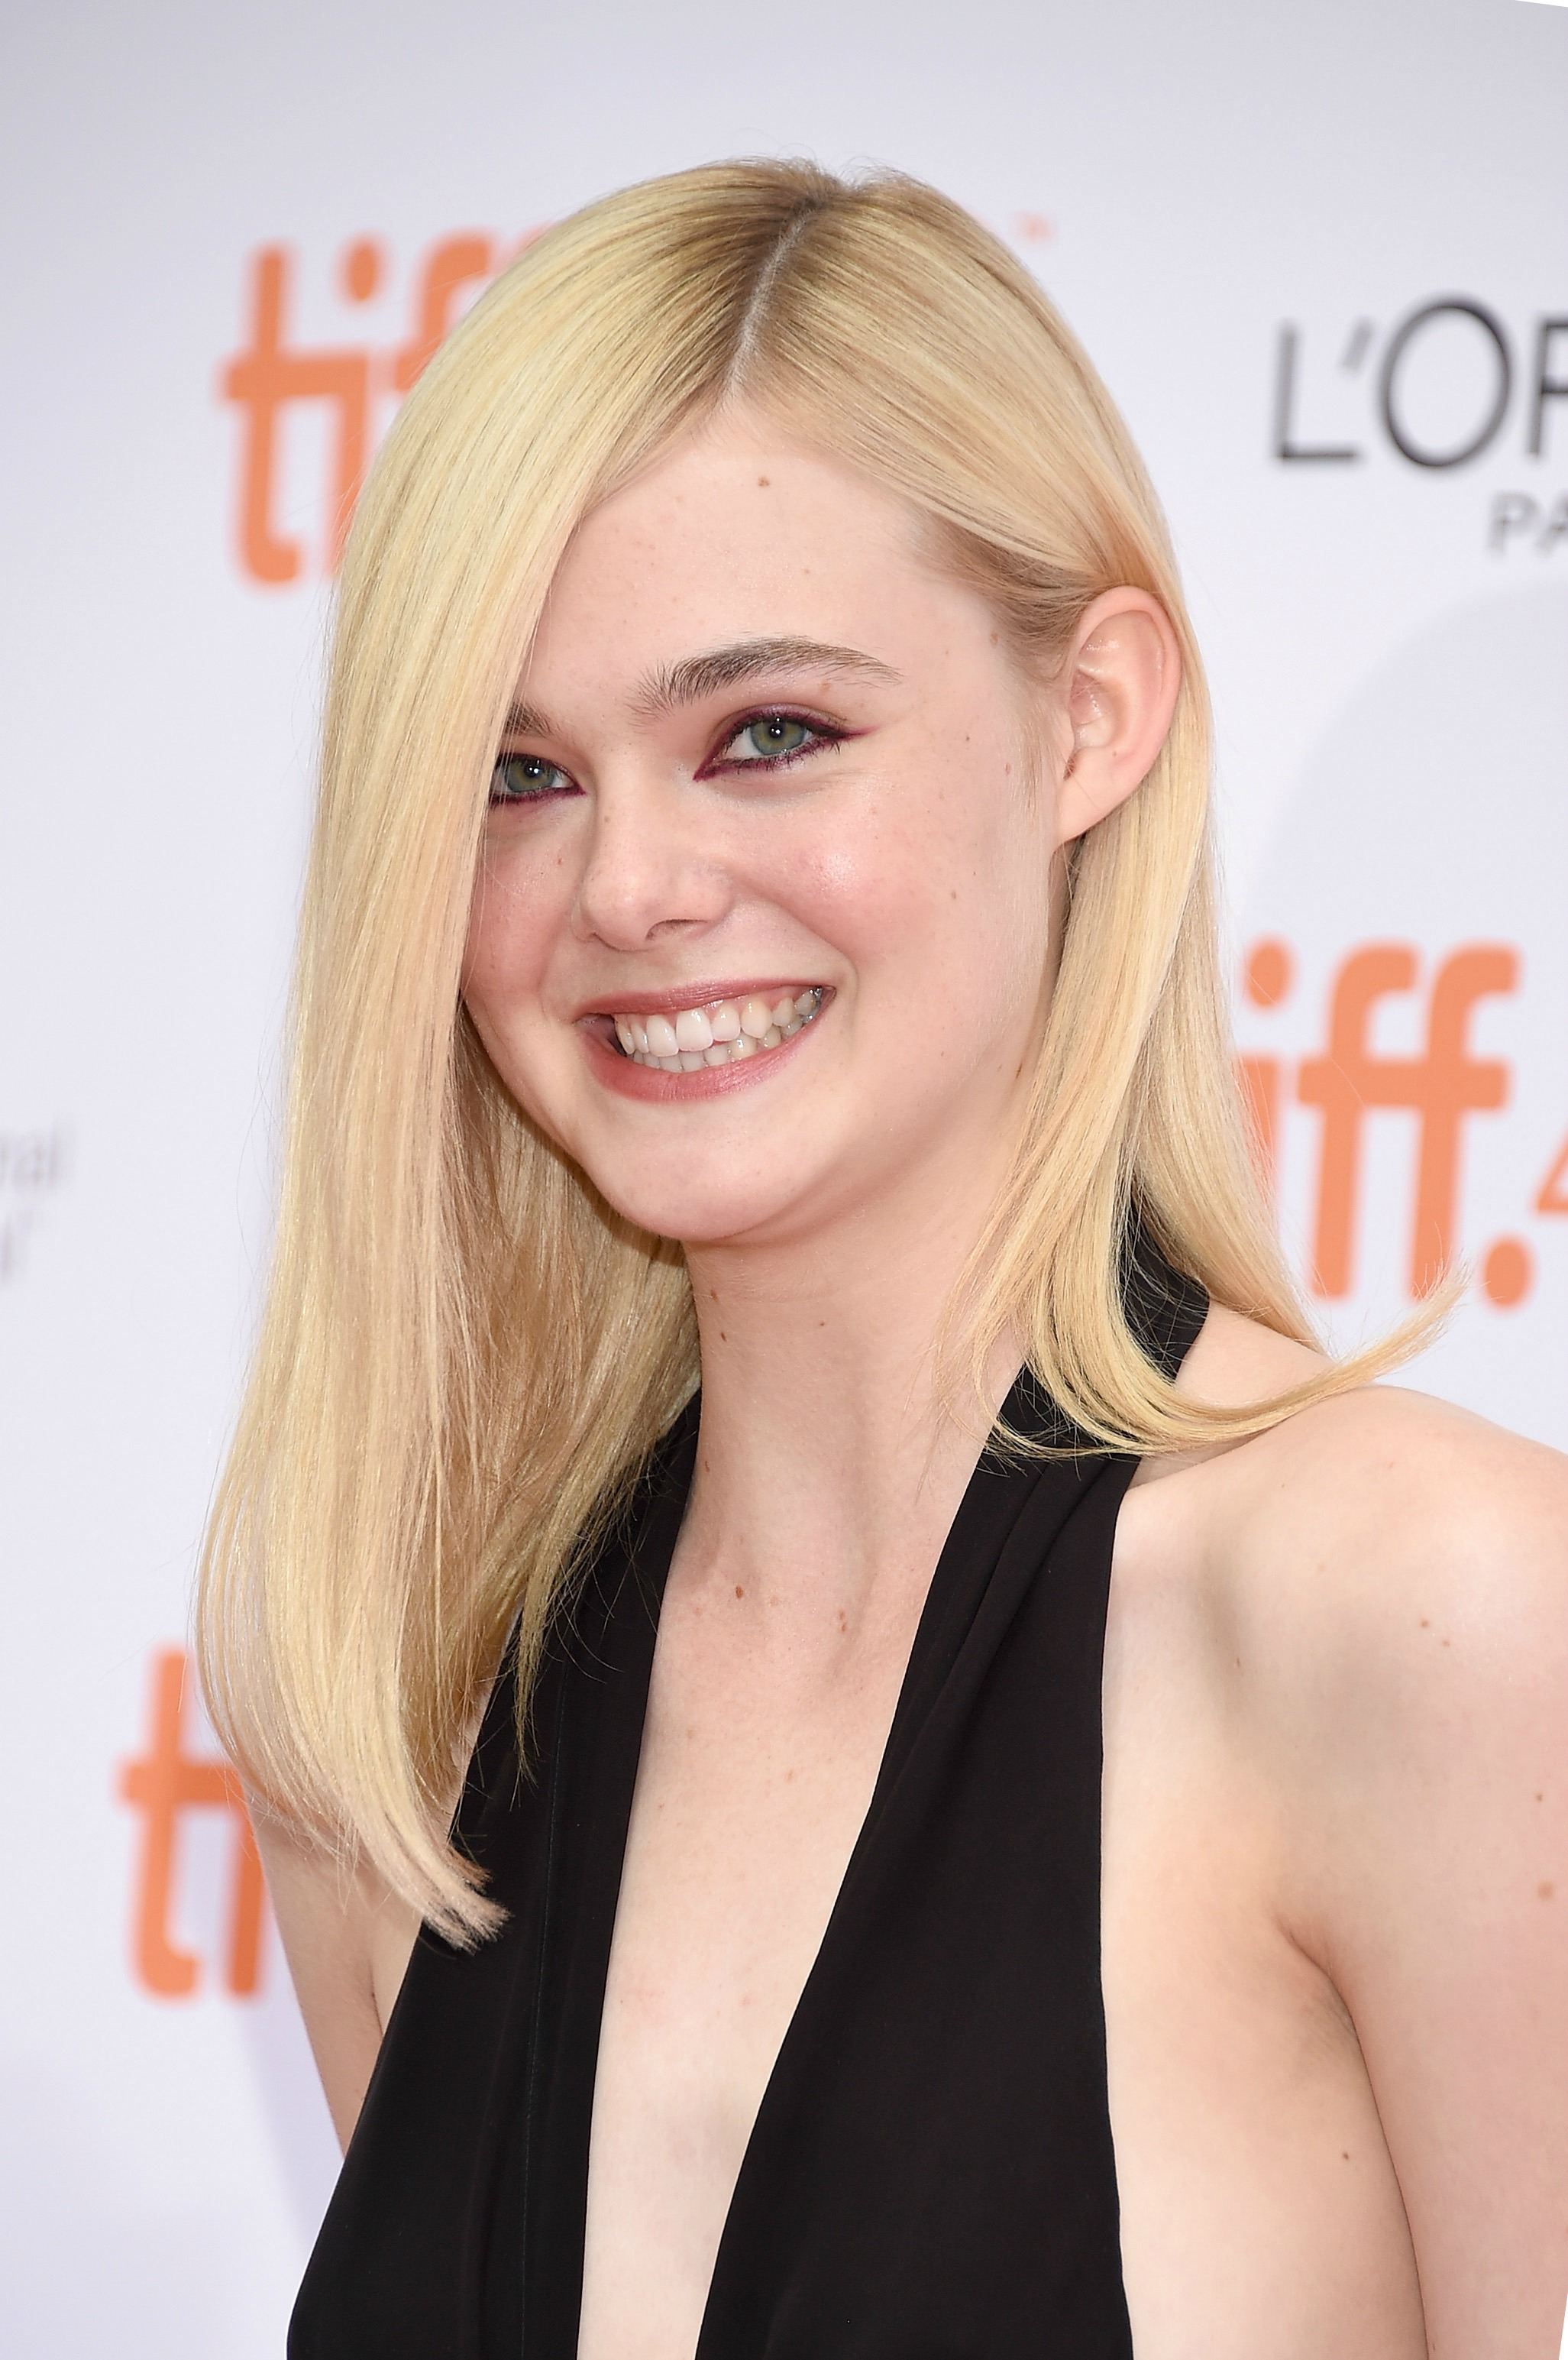 Elle Fanning AFP Mike Windle/AFPgetty images North America